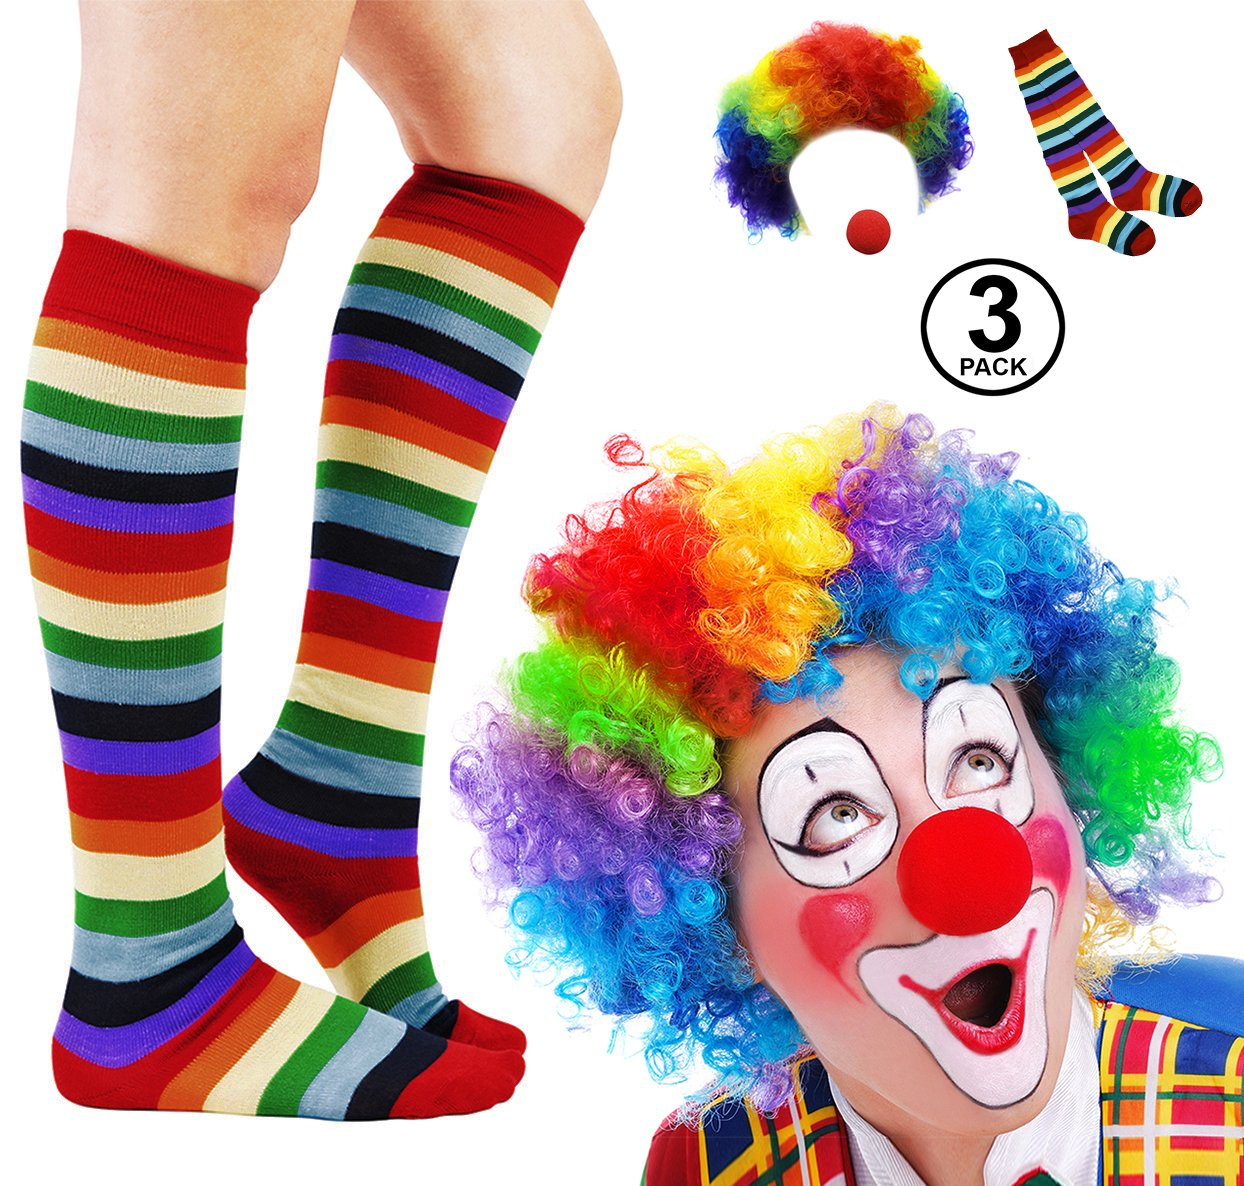 Funny Party Hats Clown Costume - 3 Pc Set - Clown Wig, Clown Nose, Clown Socks - Clown Costume Accessories f-am226-am253-fn-64402